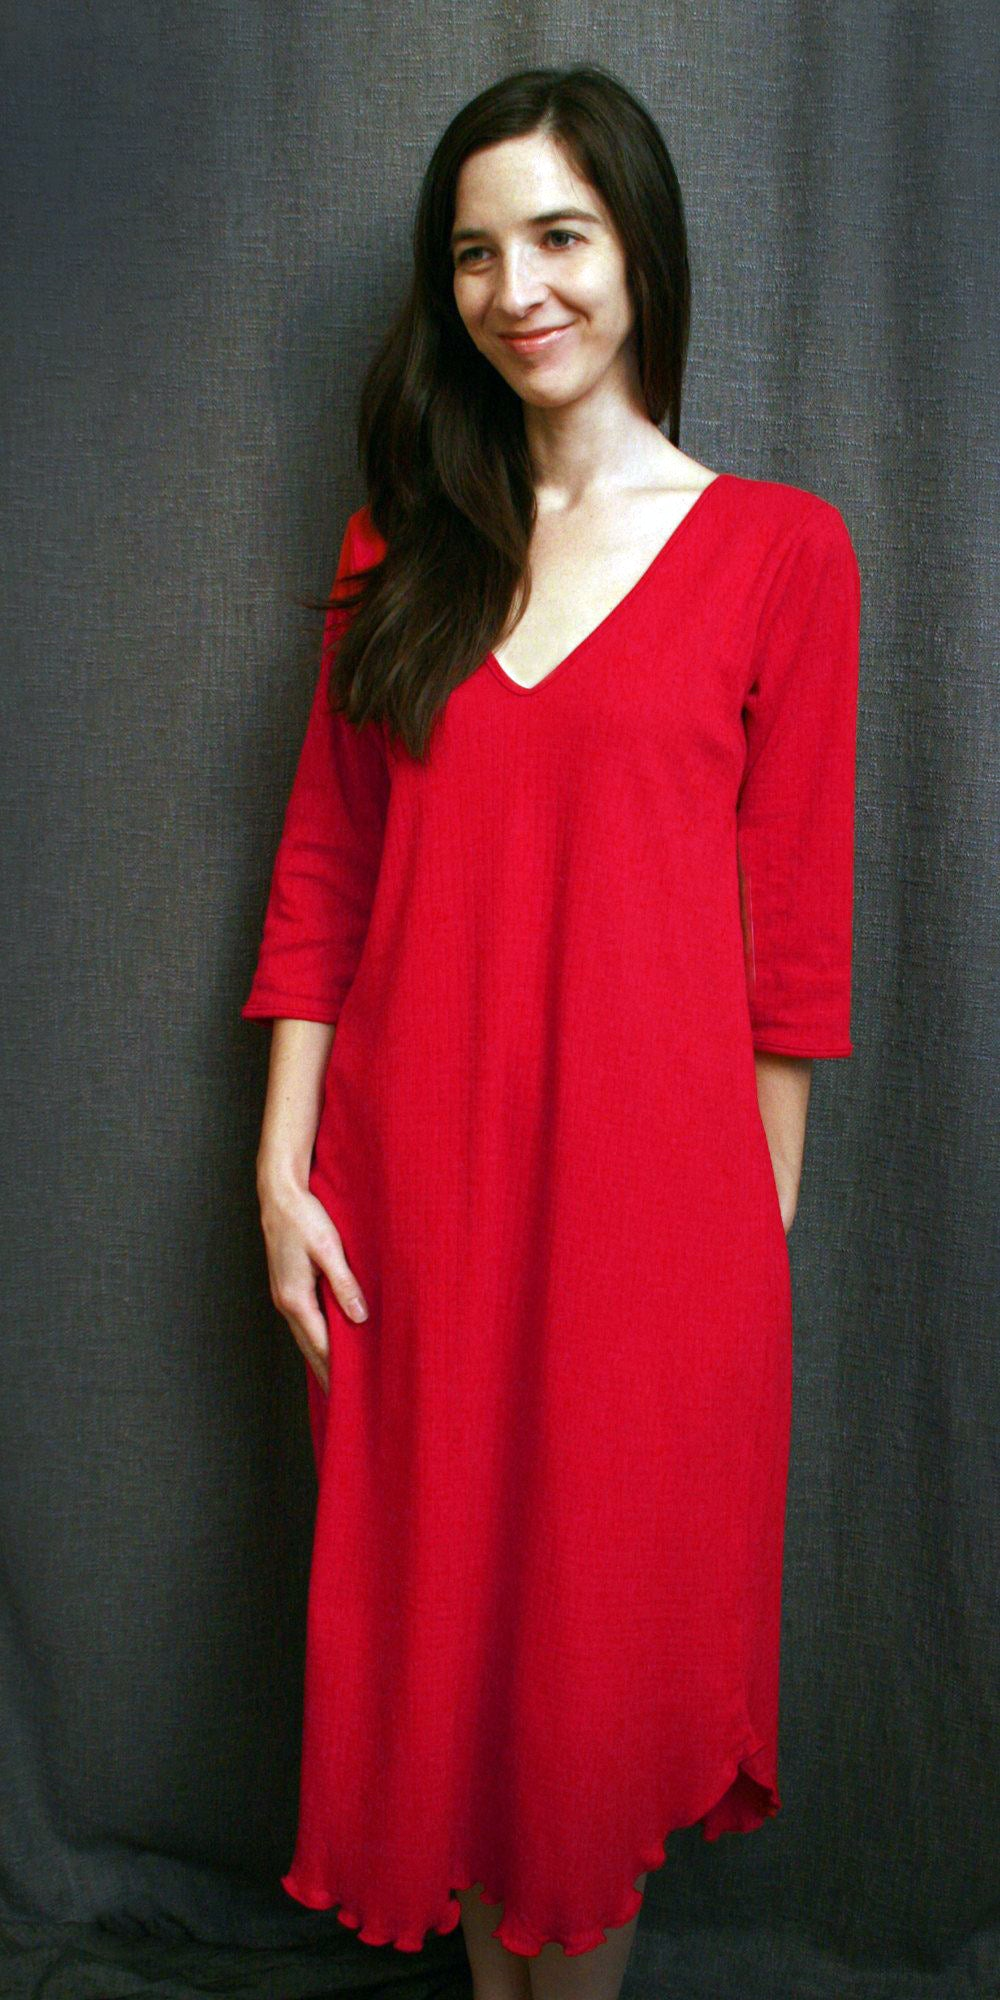 Vibrant Brights V Neck 3/4 Sleeve 3/4 Length Gown Check Collection Cherry Red